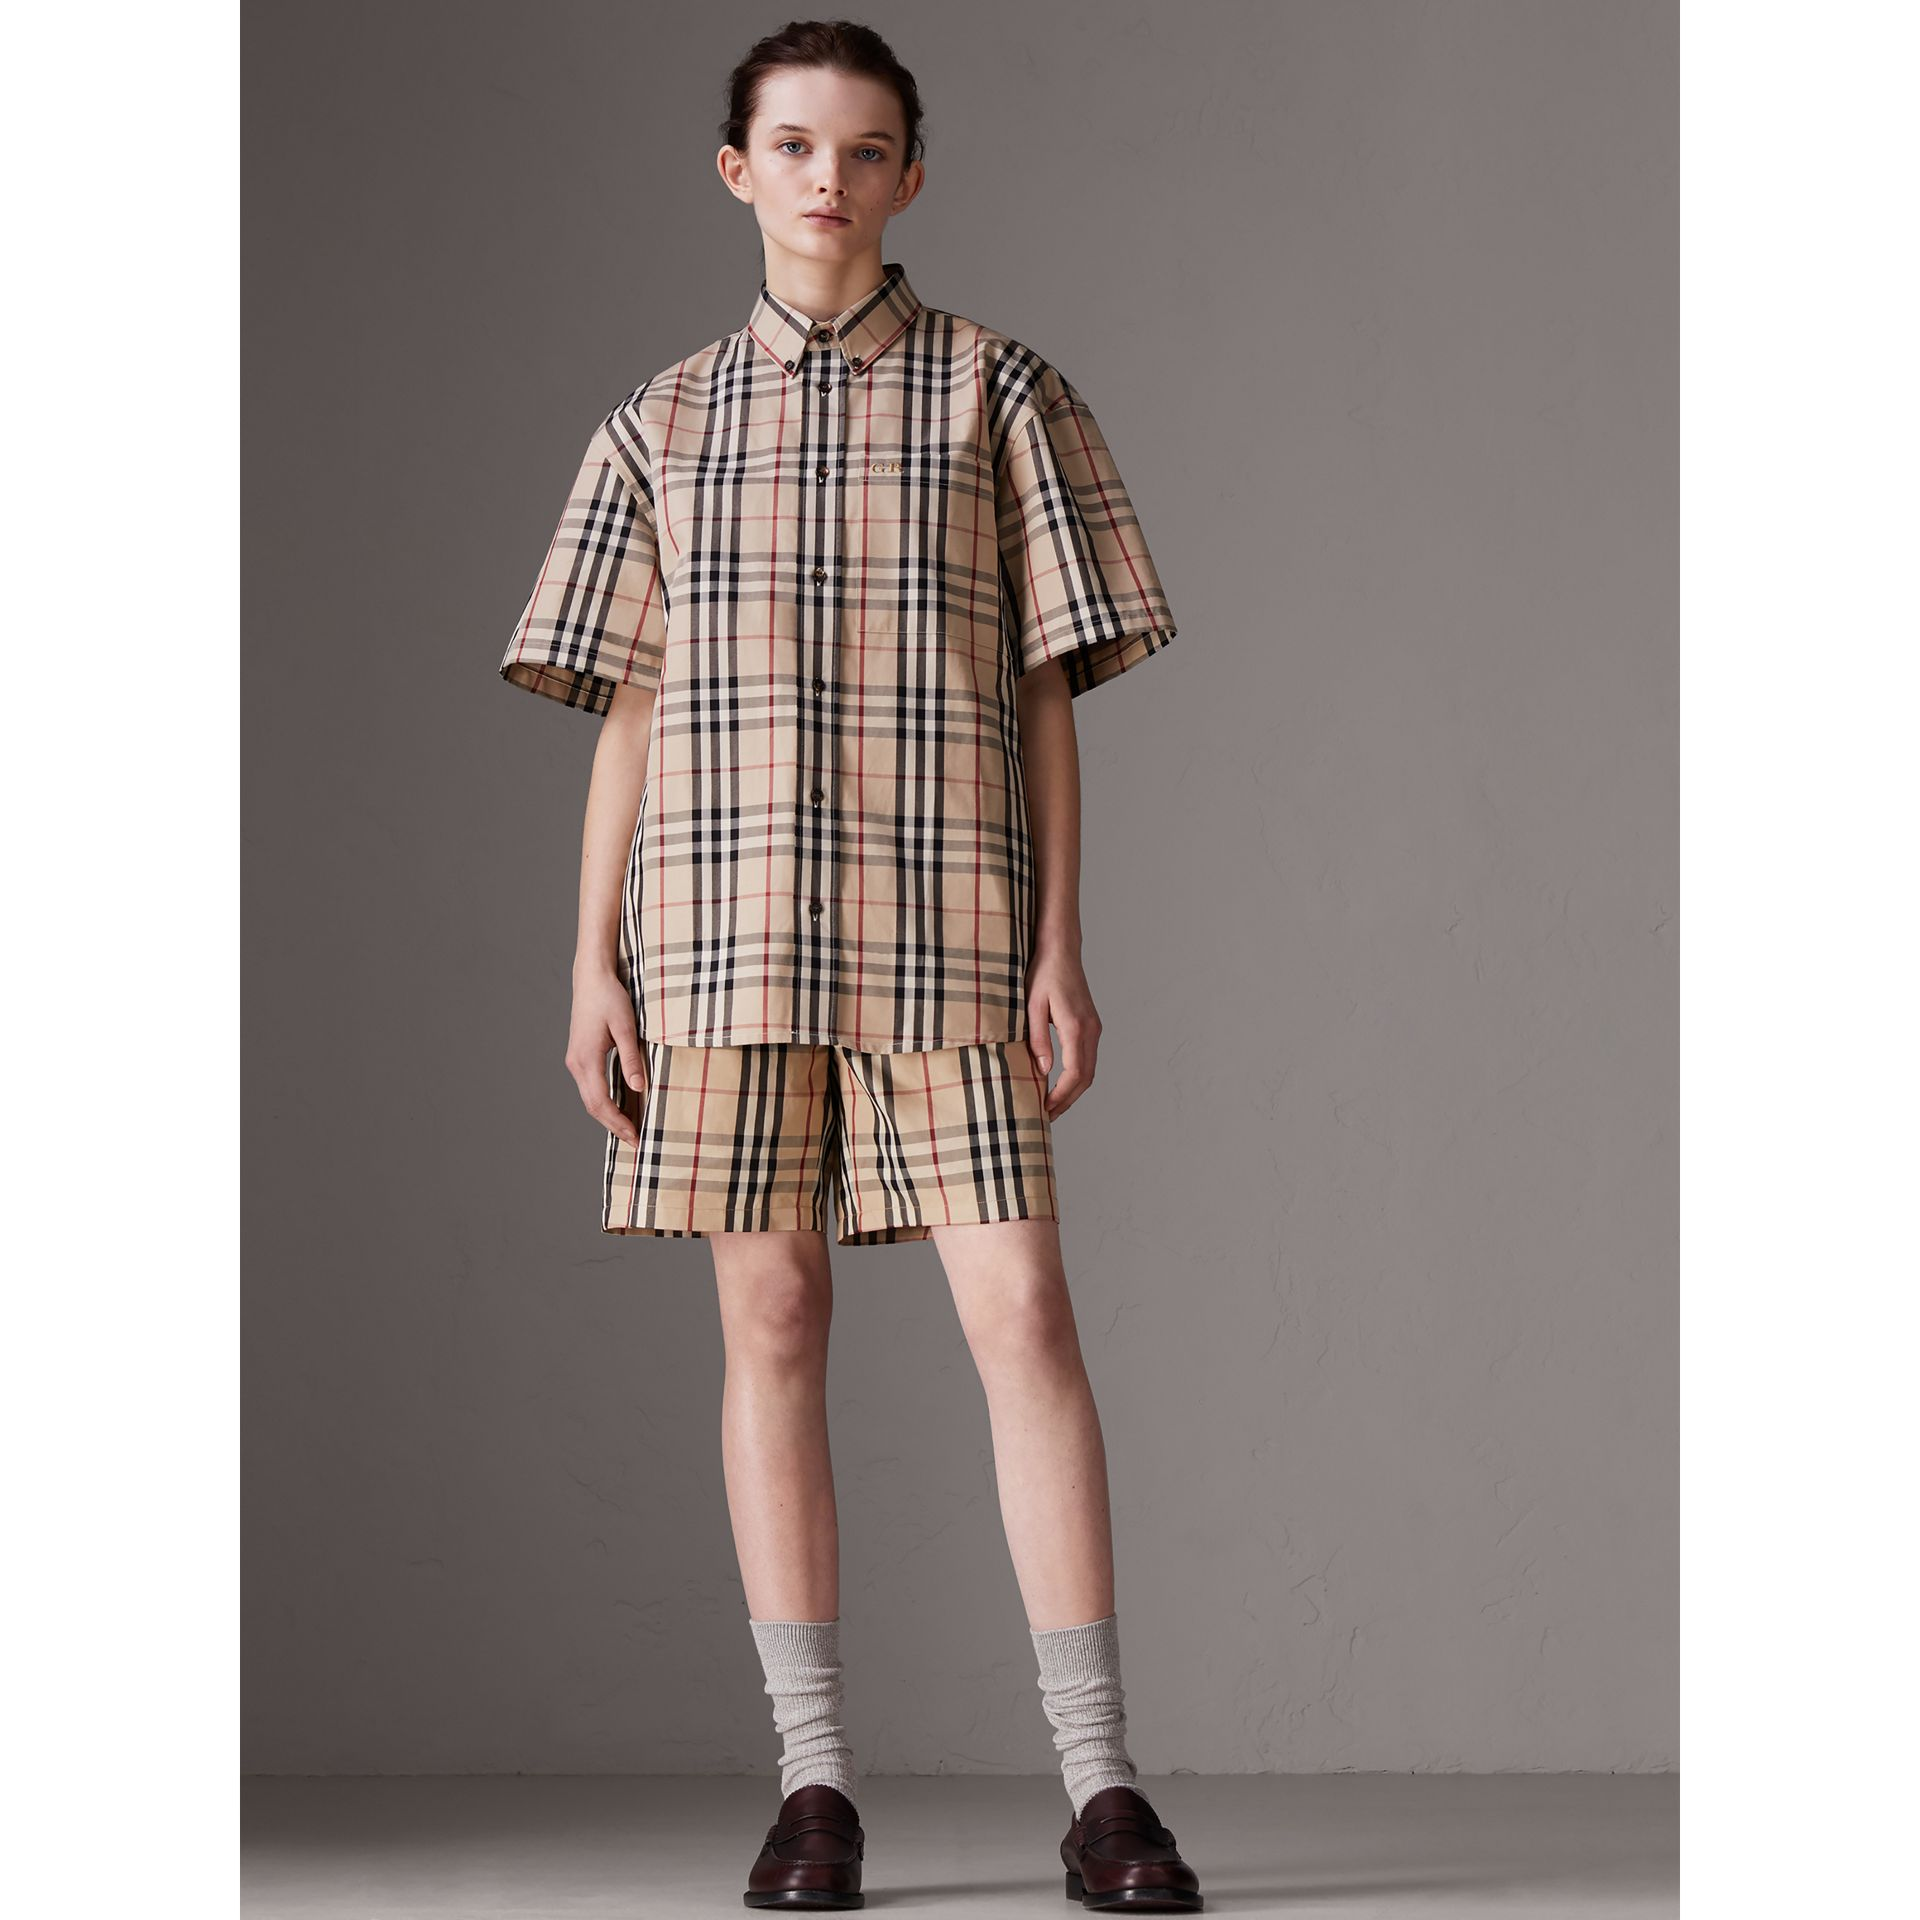 Gosha x Burberry Short-sleeve Check Shirt in Honey | Burberry - gallery image 3